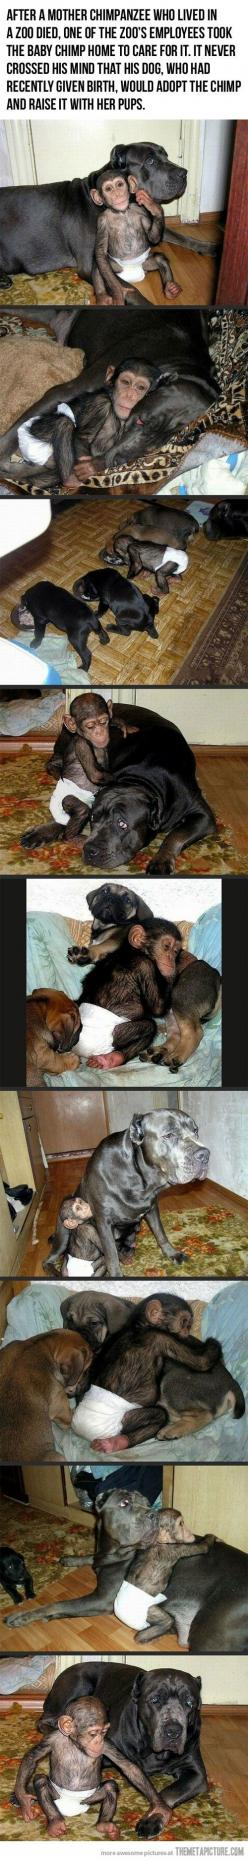 Nice dog!: Animals, Sweet, Dogs, Adopts Baby, Baby Chimpanzee, Cutest Things, Dog Adopts, Baby Monkeys, Cane Corso